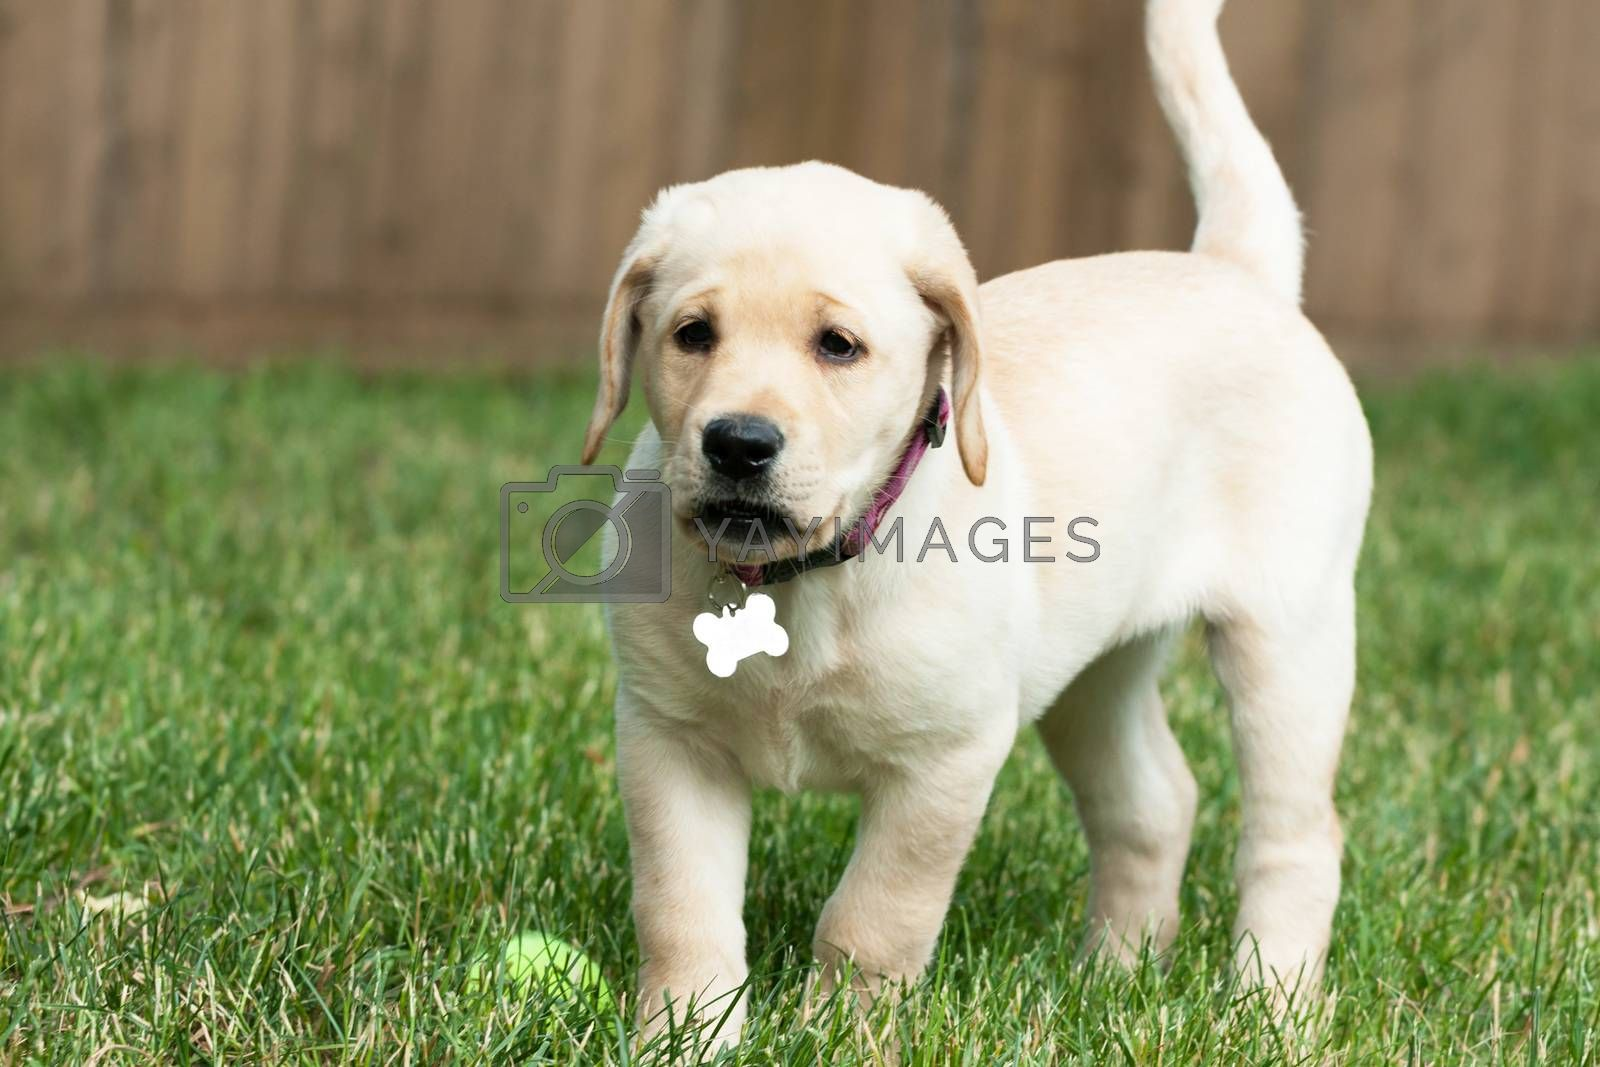 Close up of a cute yellow labrador puppy laying in the grass outdoors. Shallow depth of field.